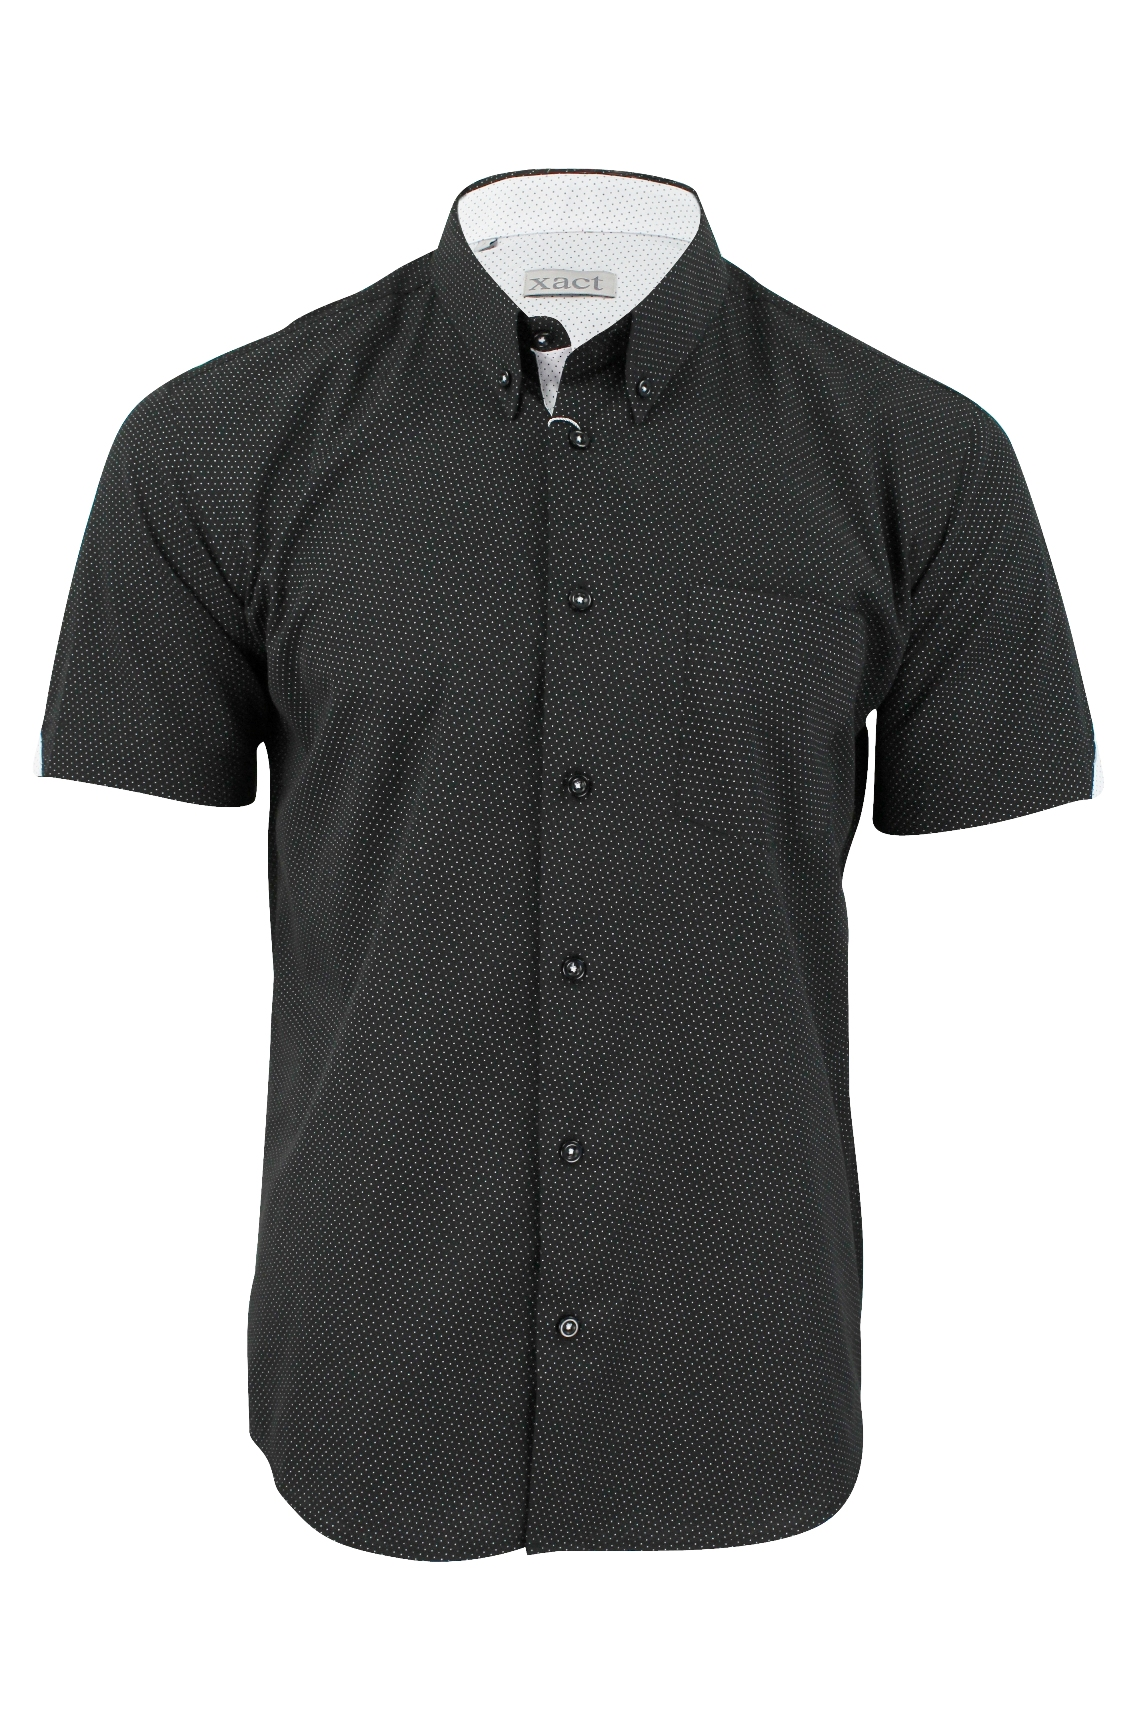 Mens short sleeved shirt by xact clothing mini polka dot for Mens polka dot shirt short sleeve